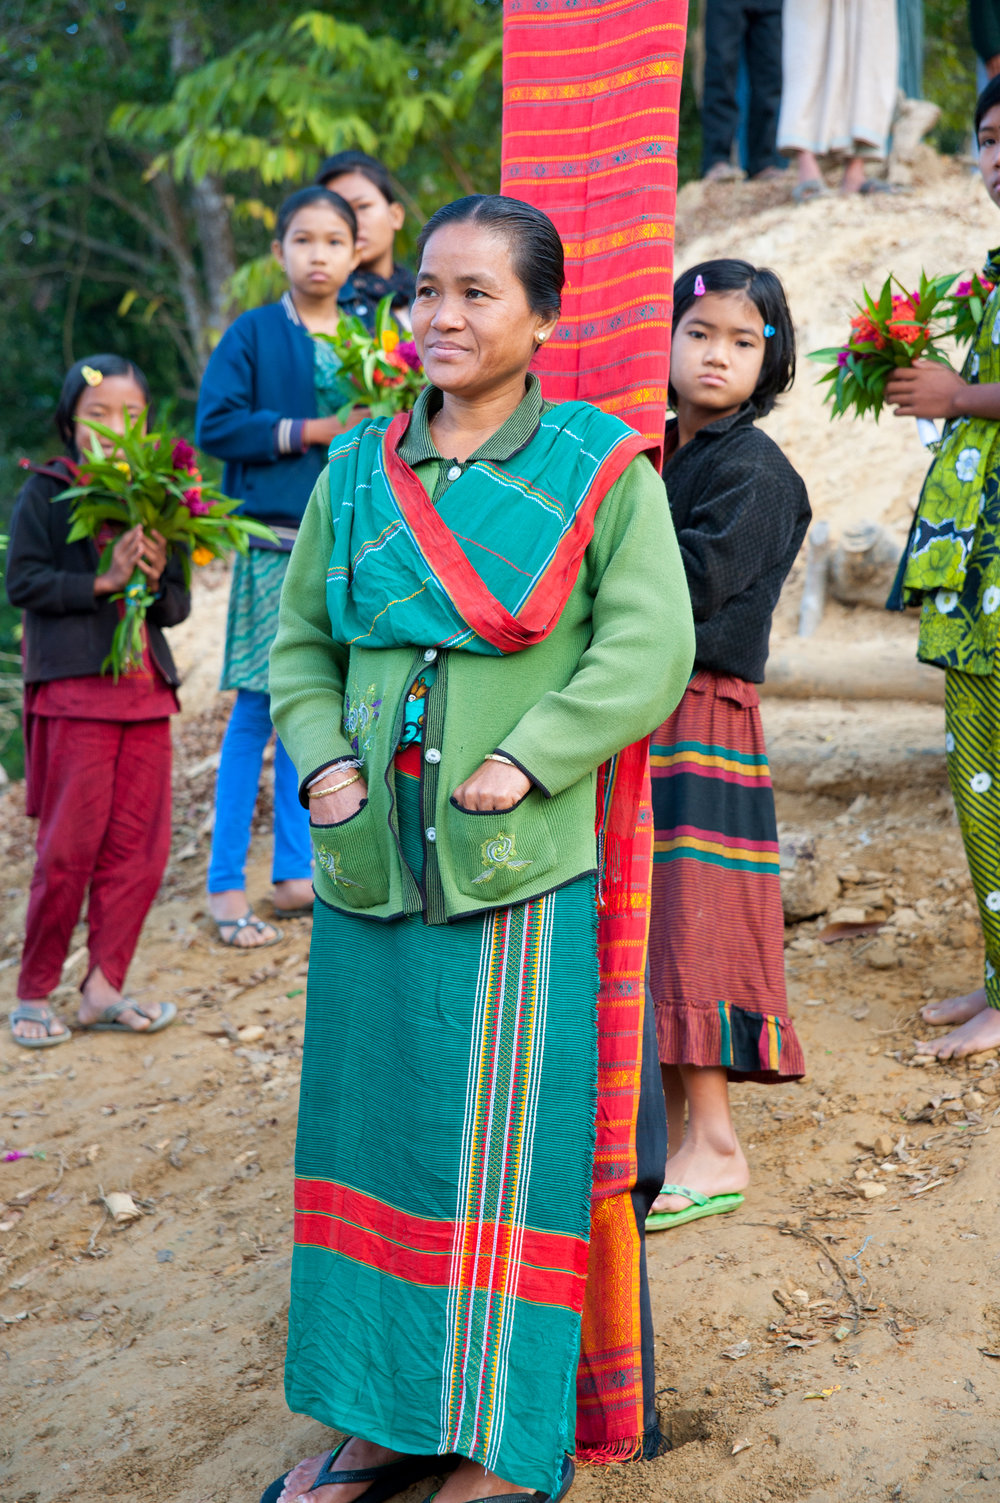 Chakma tribe members greeted us in their best dress on the shores of their village on Lake Kaptai. Photo by Shinobu Suzuki.